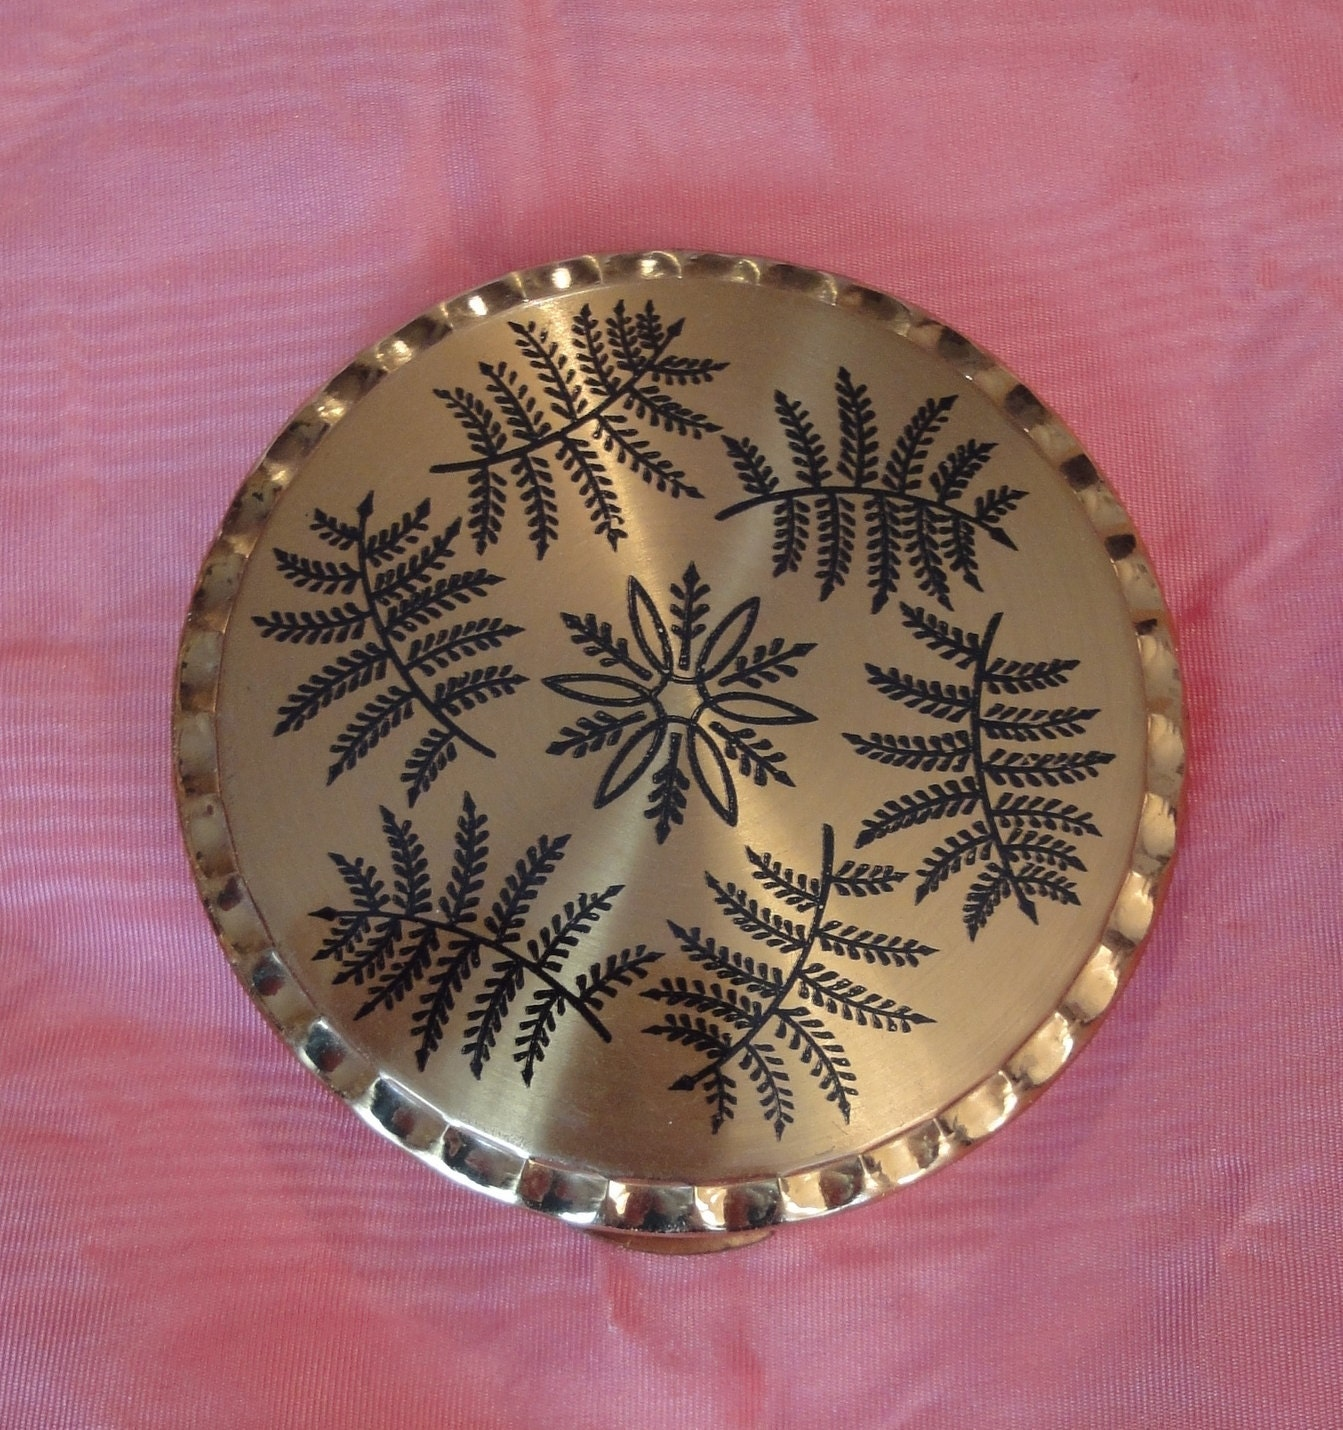 Vintage 50s 60s Kigu powder compact case gold tone black print decoration mid-century modern Mad Men - willynillyart